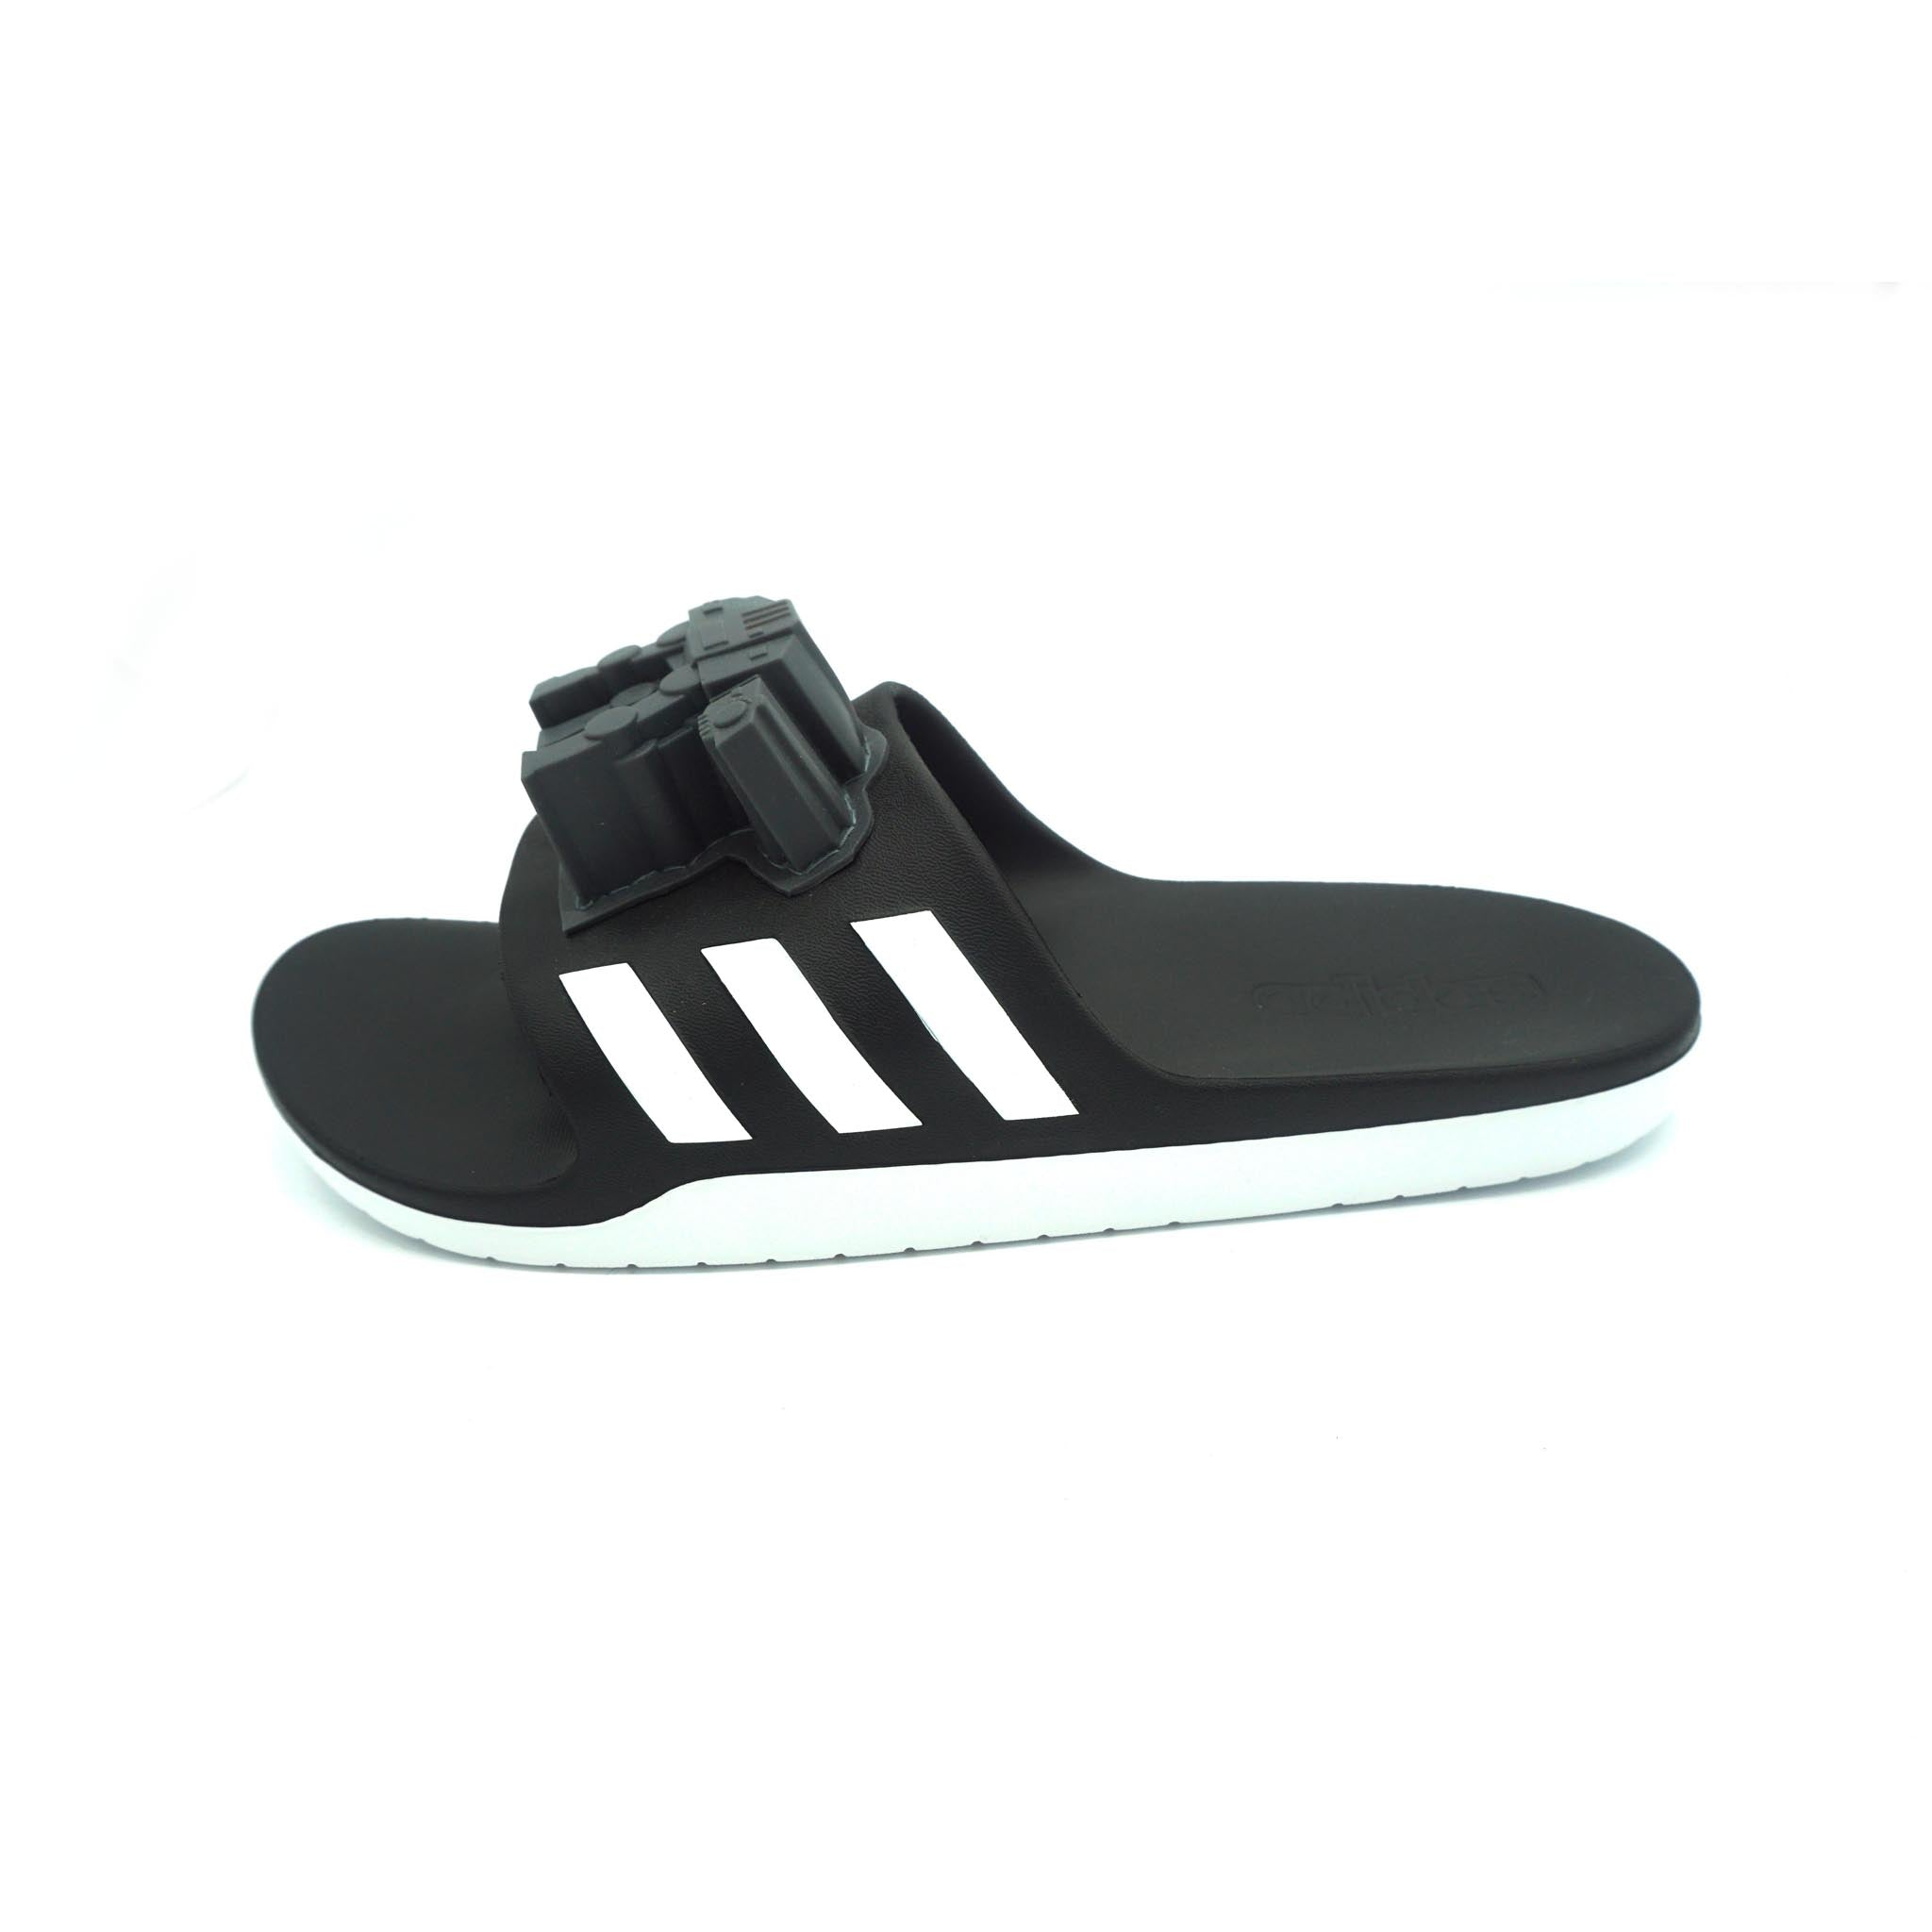 Adidas Pool Slides: REWORKED Where-its-ATAT